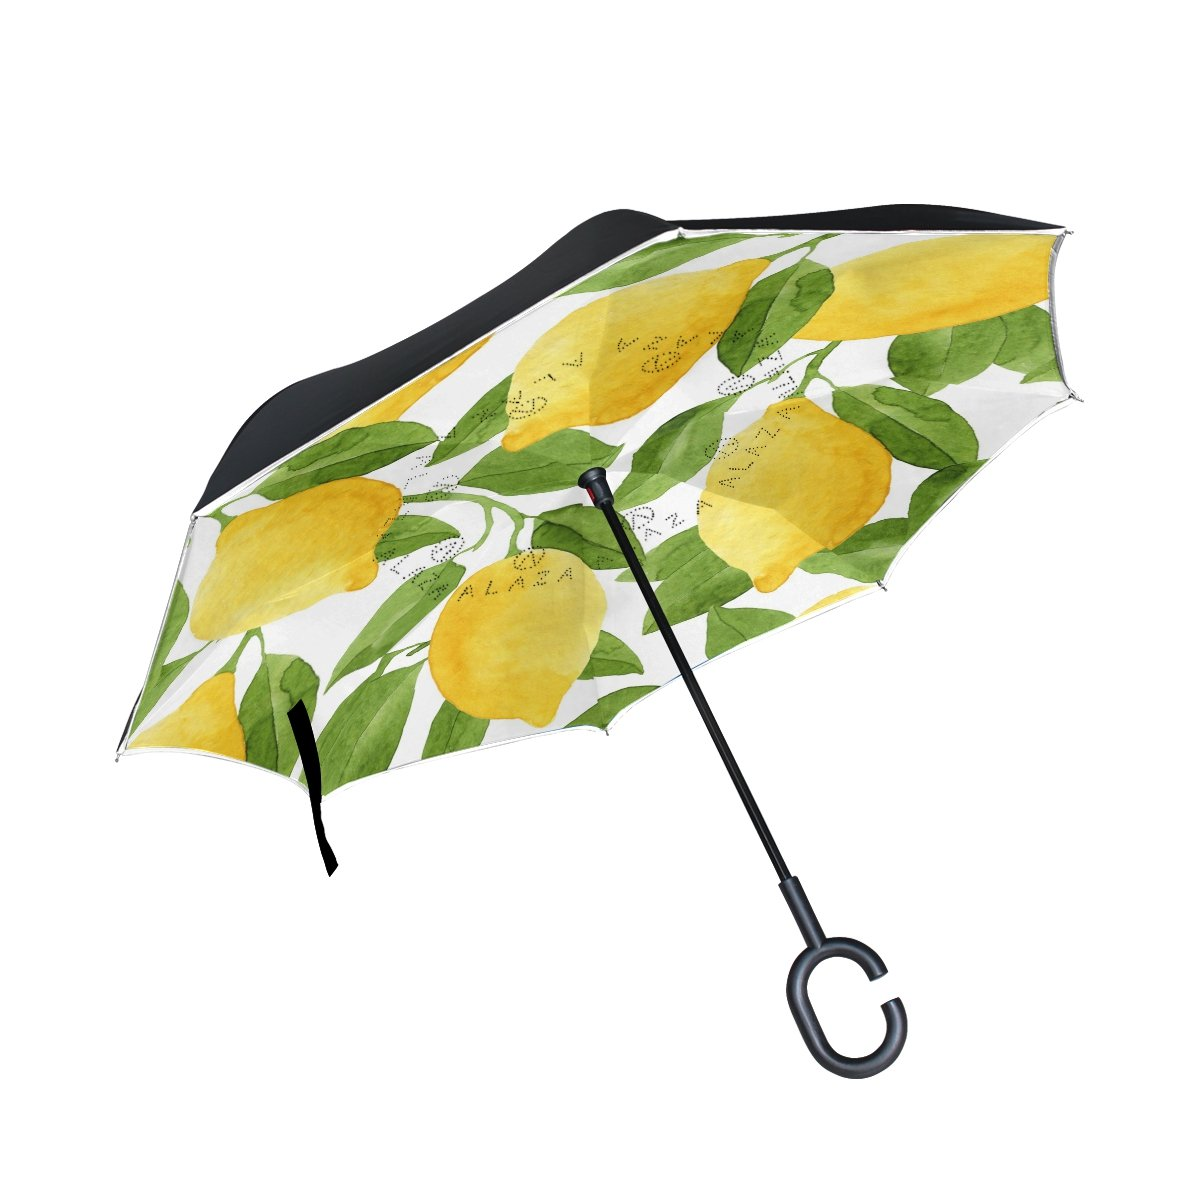 ALAZA Inverted Umbrella, Large Double Layer Outdoor Rain Sun Car Reversible Umbrella